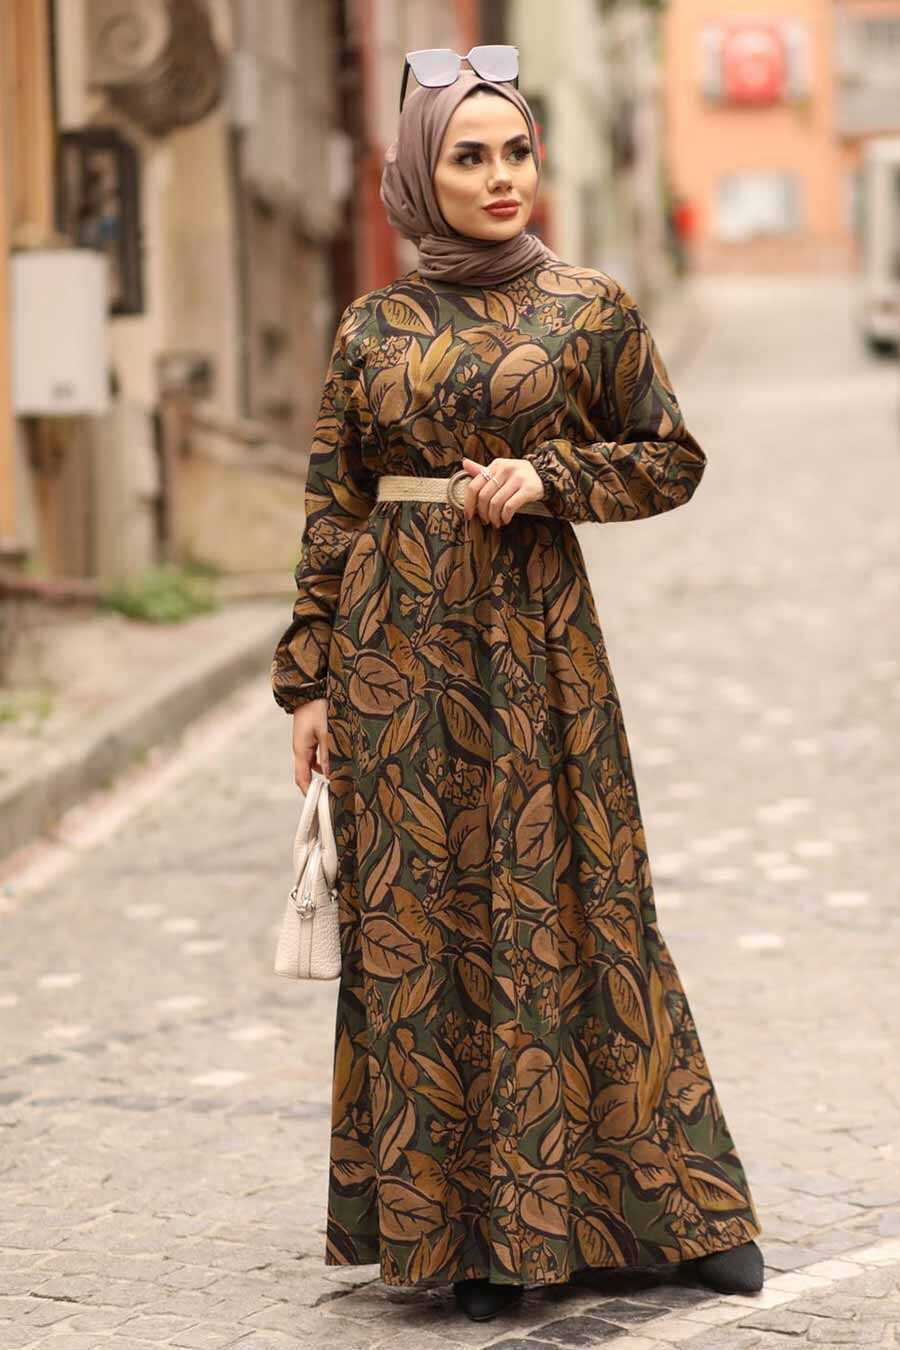 Khaki Hijab Dress 4677HK